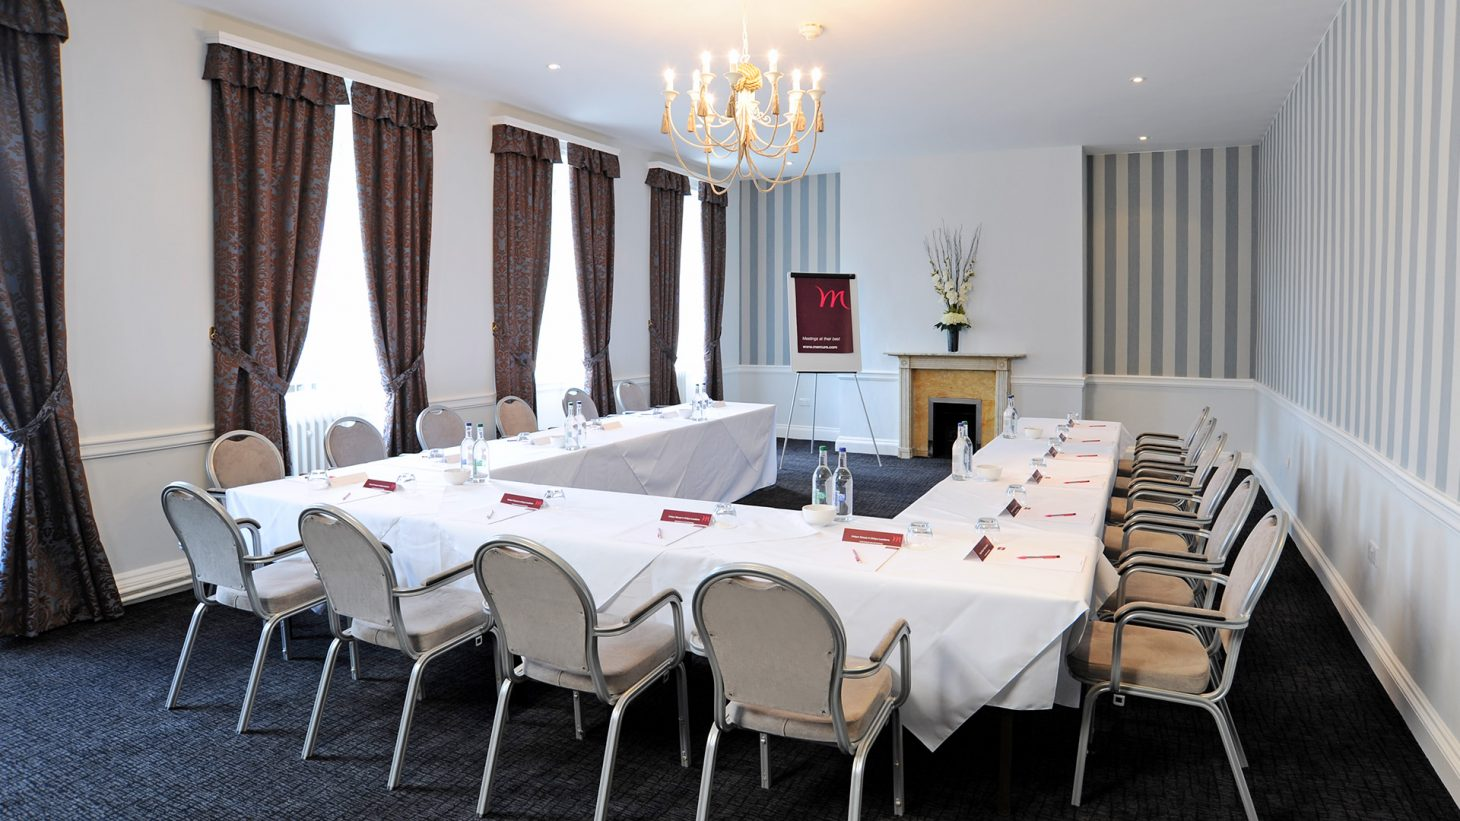 Meeting Room Hire Southampton